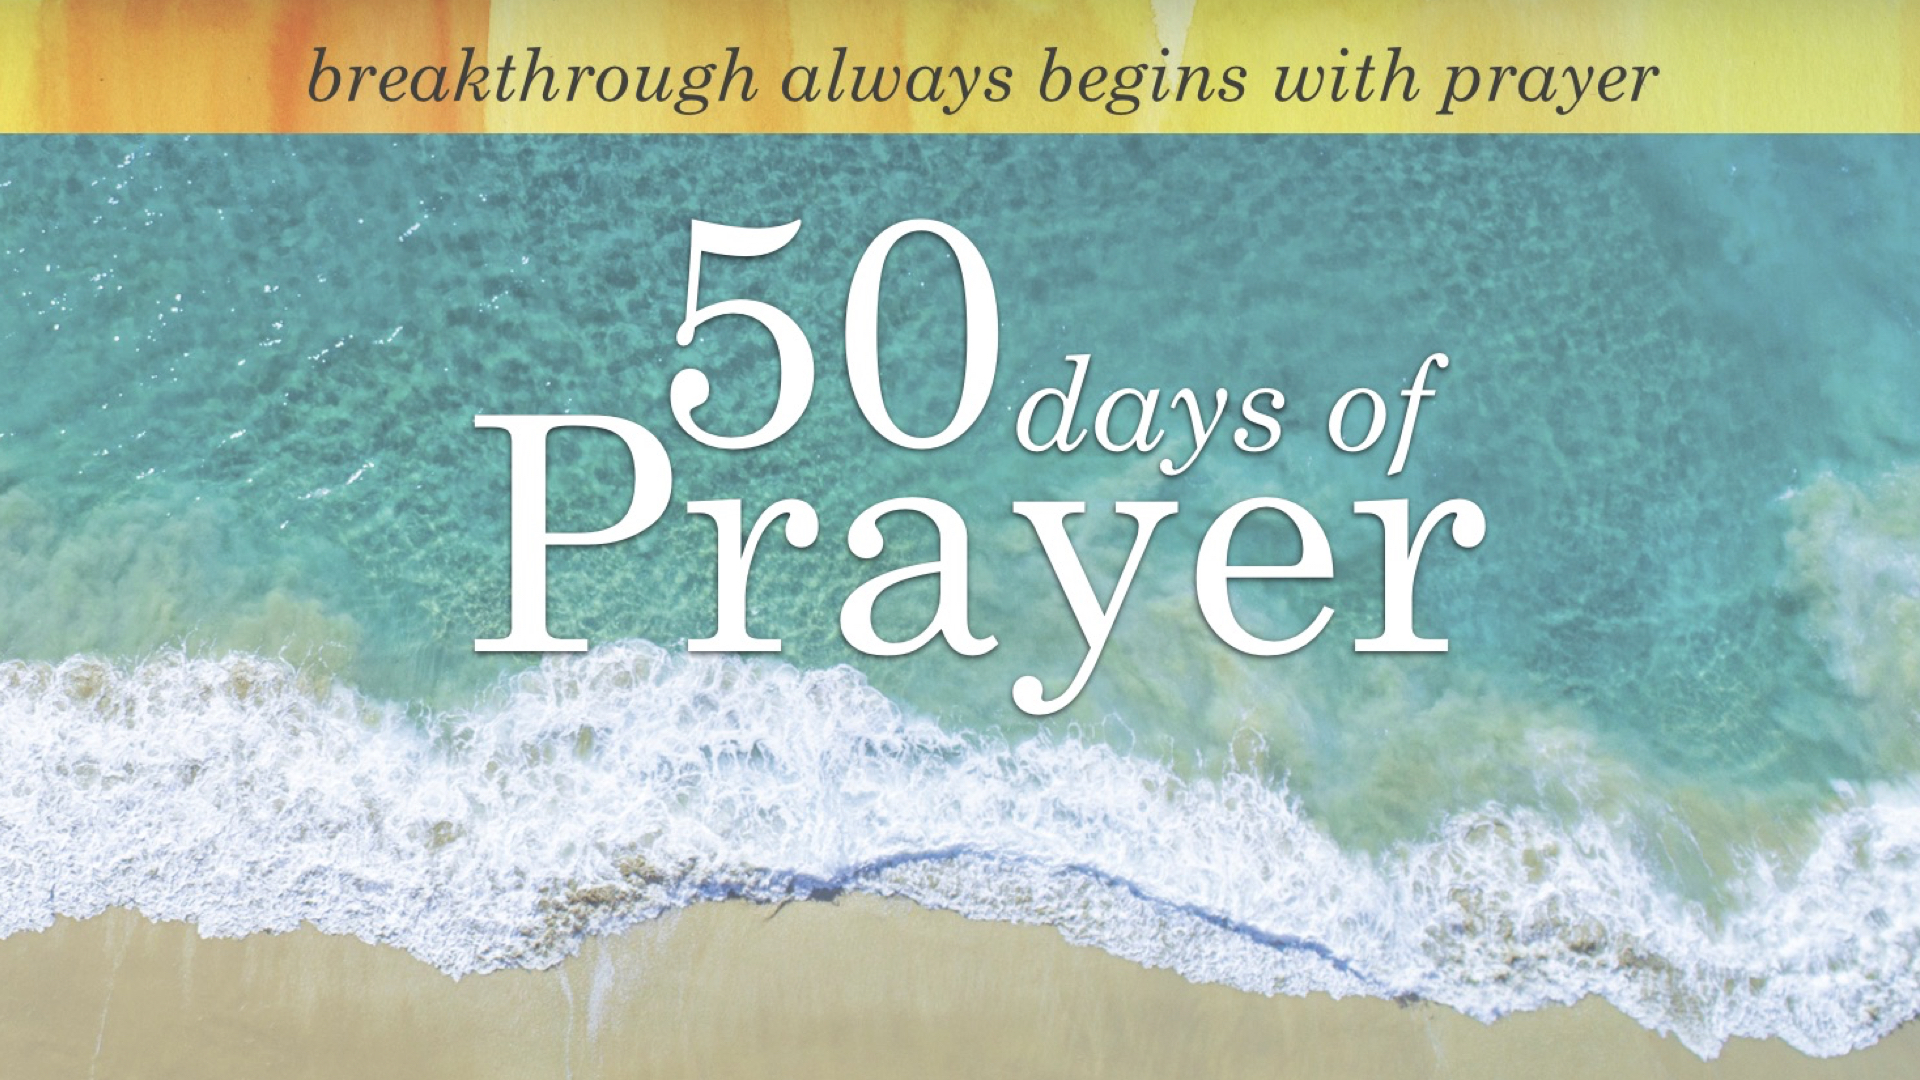 50 days of prayer 9: pray like jesus prayed - PHIL CHORLIAN | 12.2.2018 | WATCH